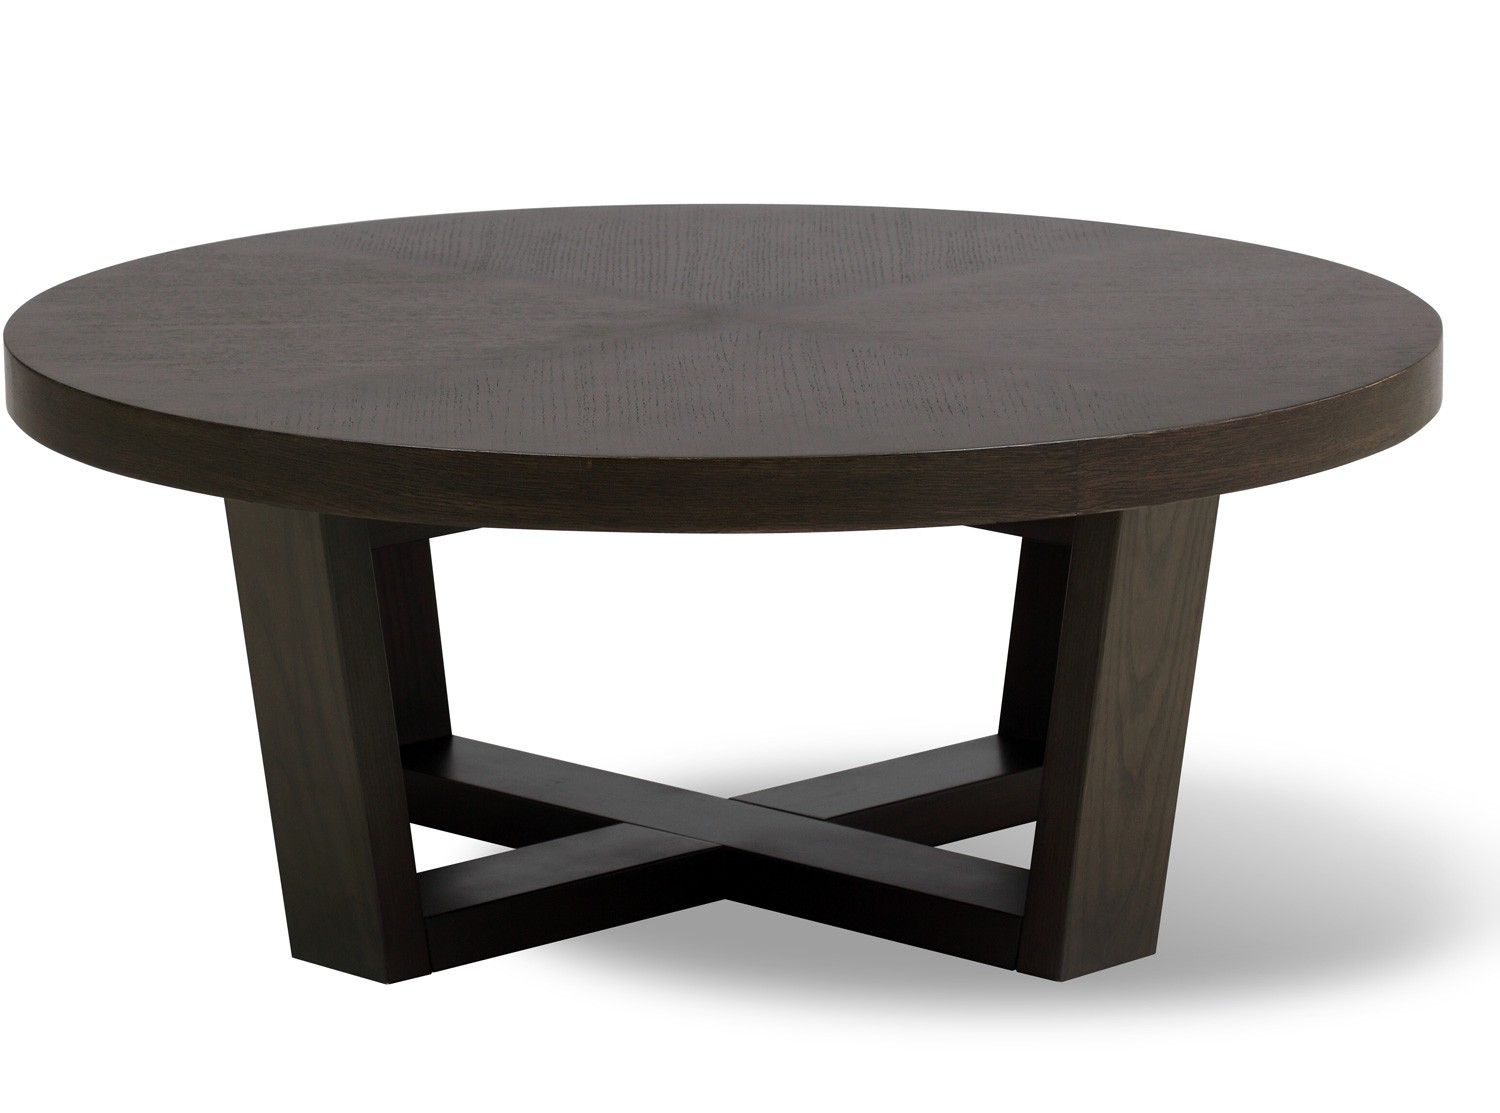 Tamma Round Coffee Table 100 Cm